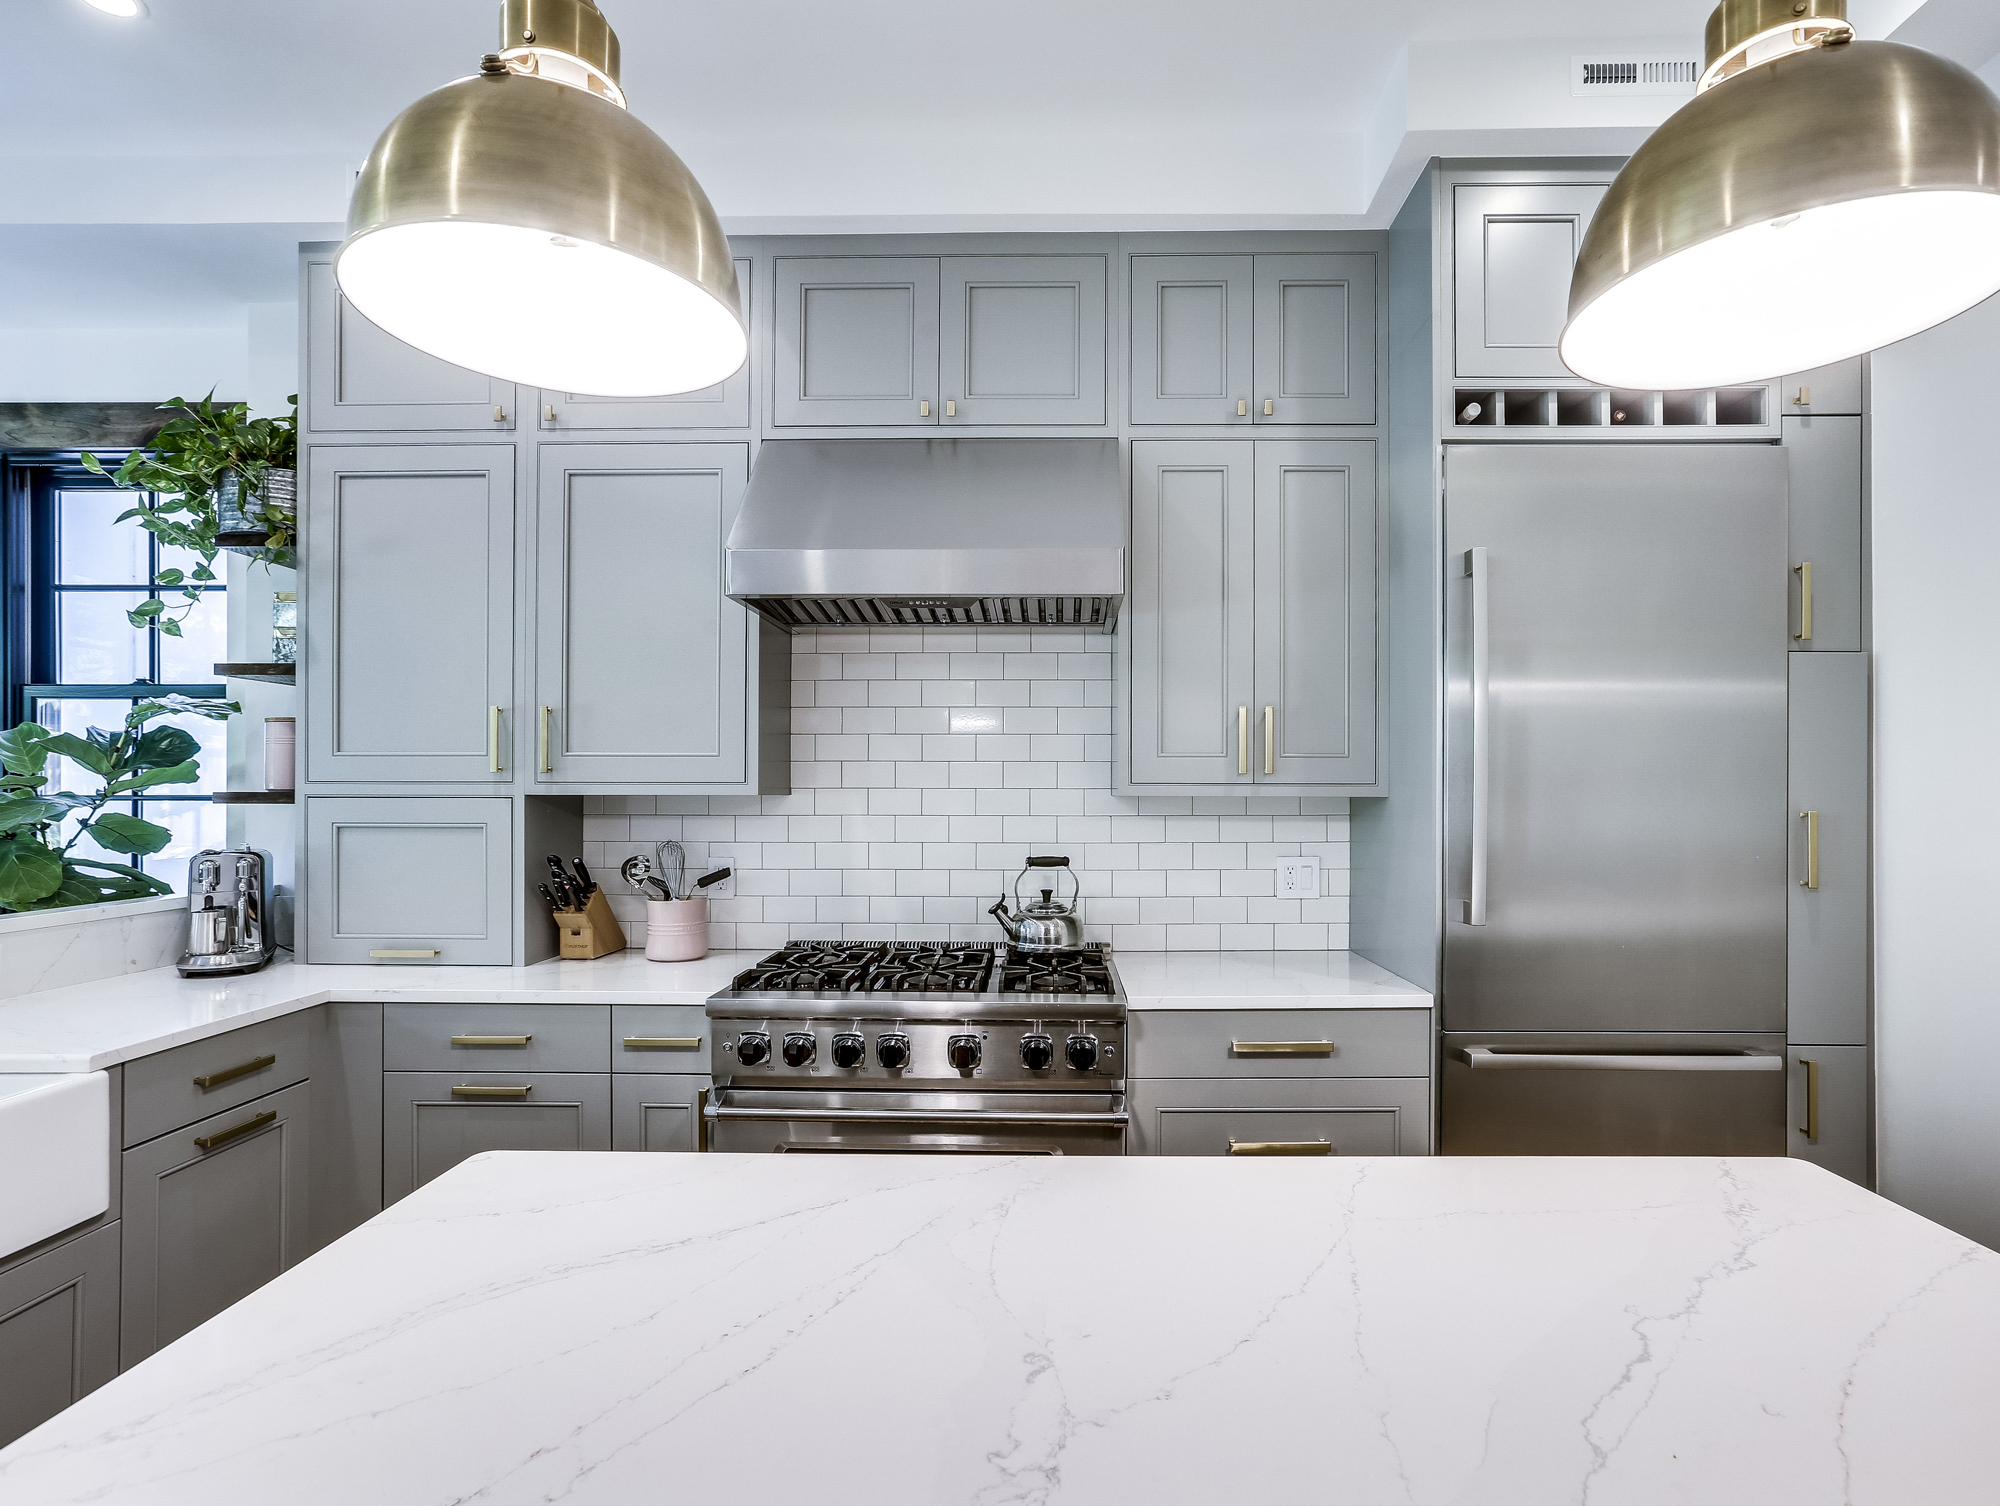 Chic Design And Functionality Delivered In Georgetown Renovation